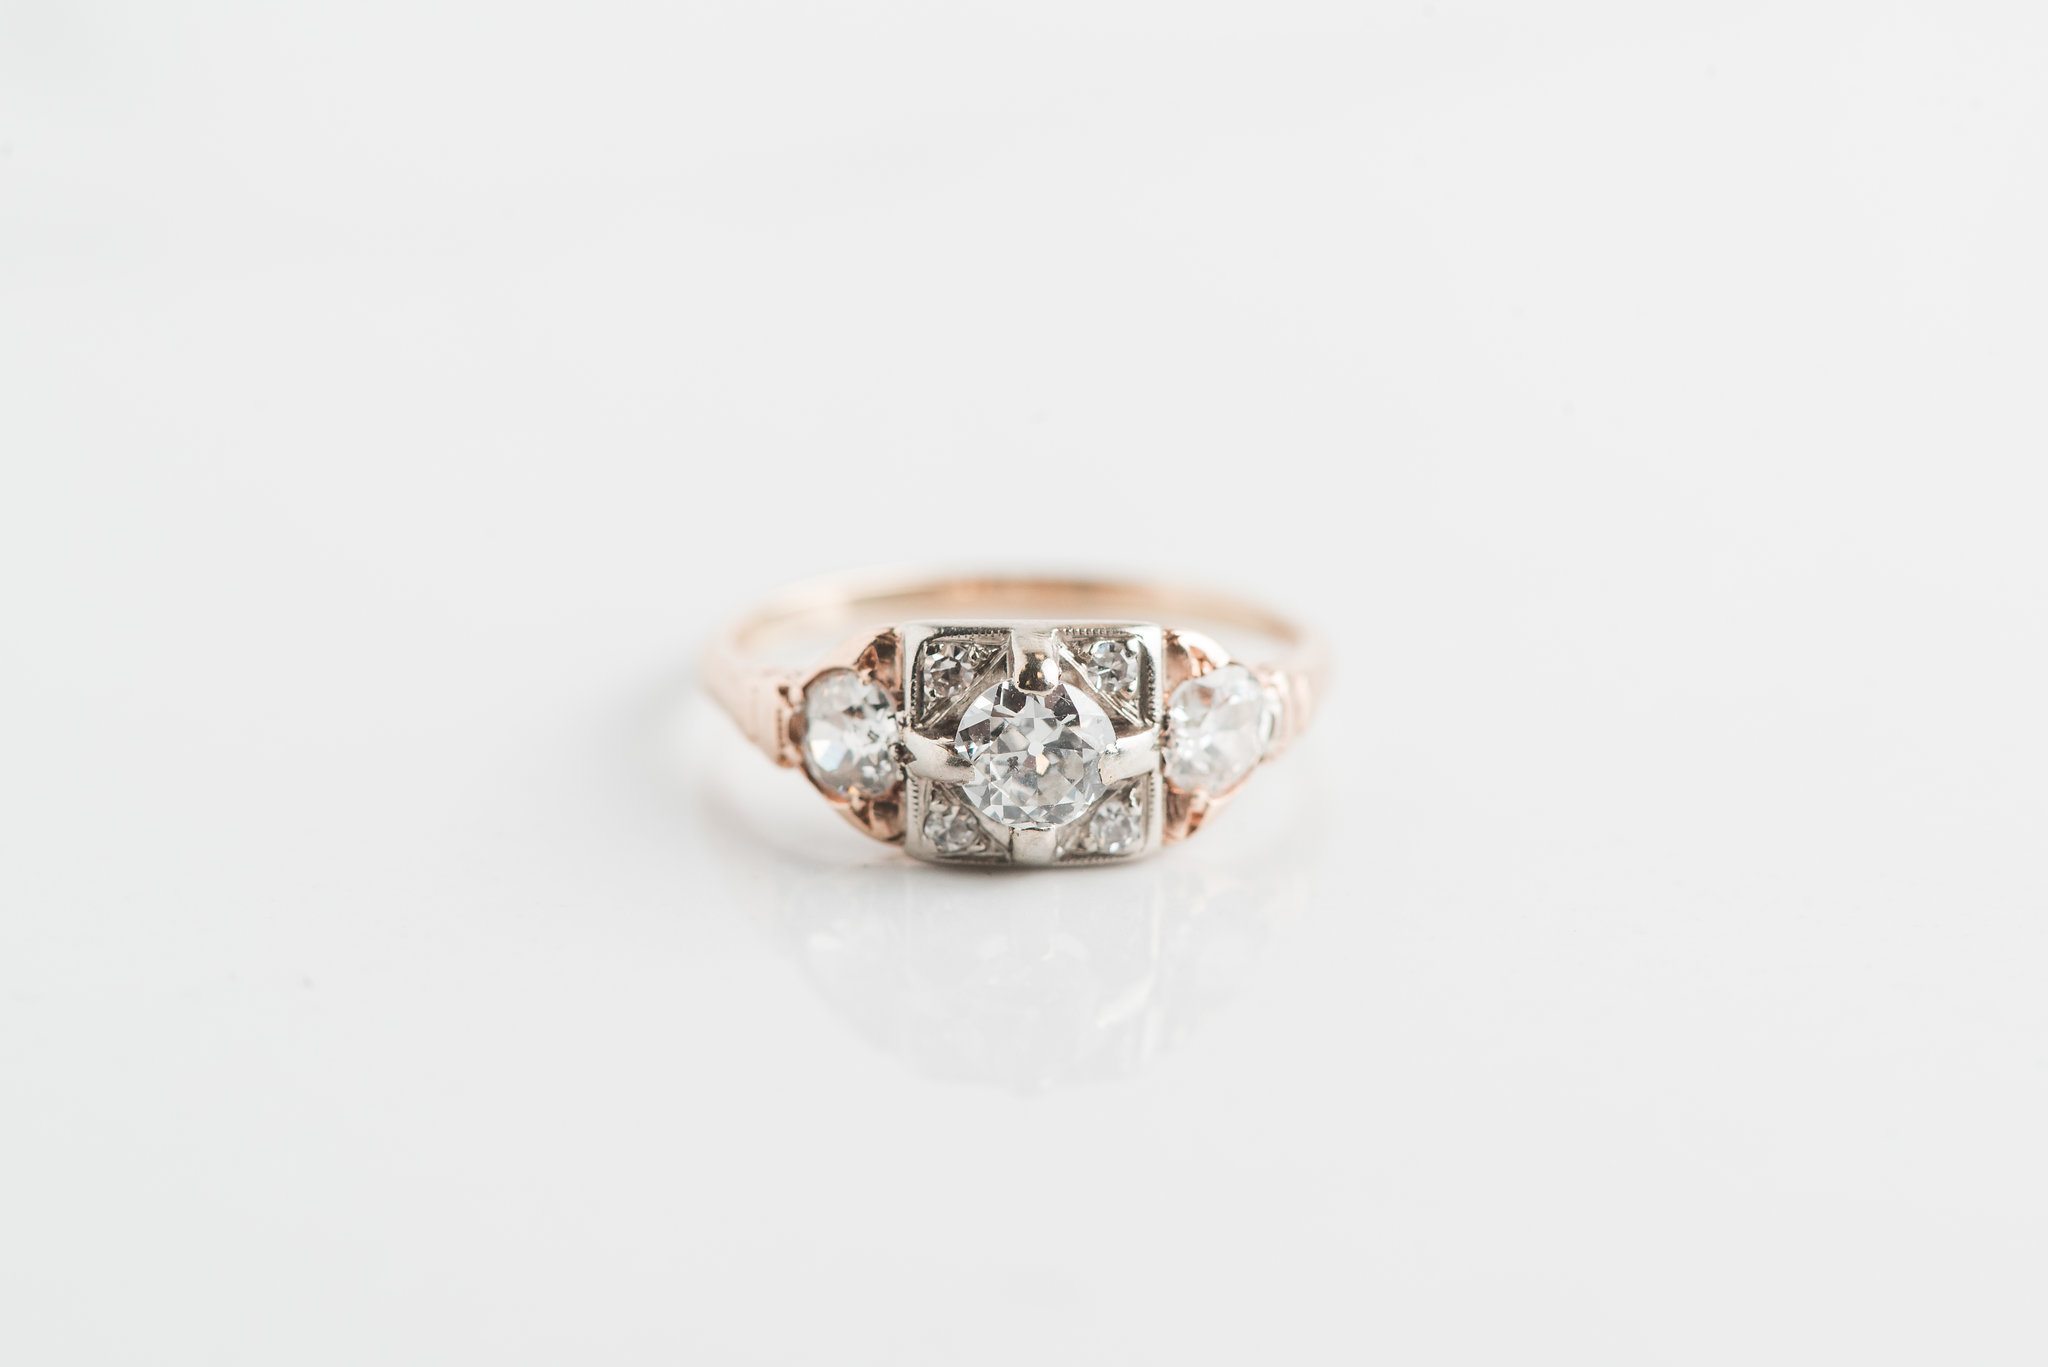 One of the engagement rings in Lauren Priori's expanded antique collection. All photos by Brittani Elizabeth Photography.